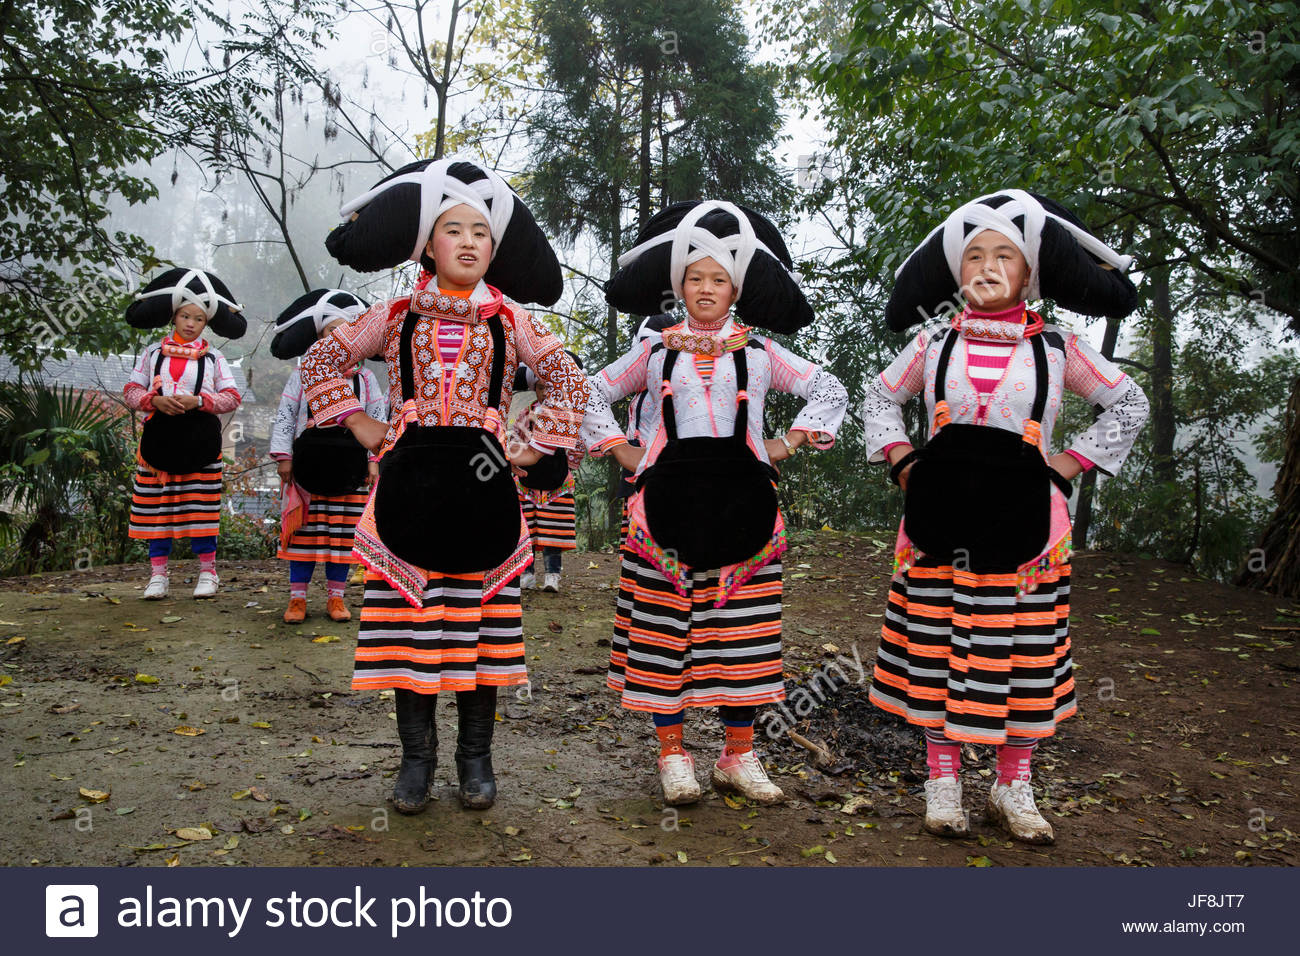 Women from the Long-horned Miao ethnic minority group in Gaoxing village. - Stock Image